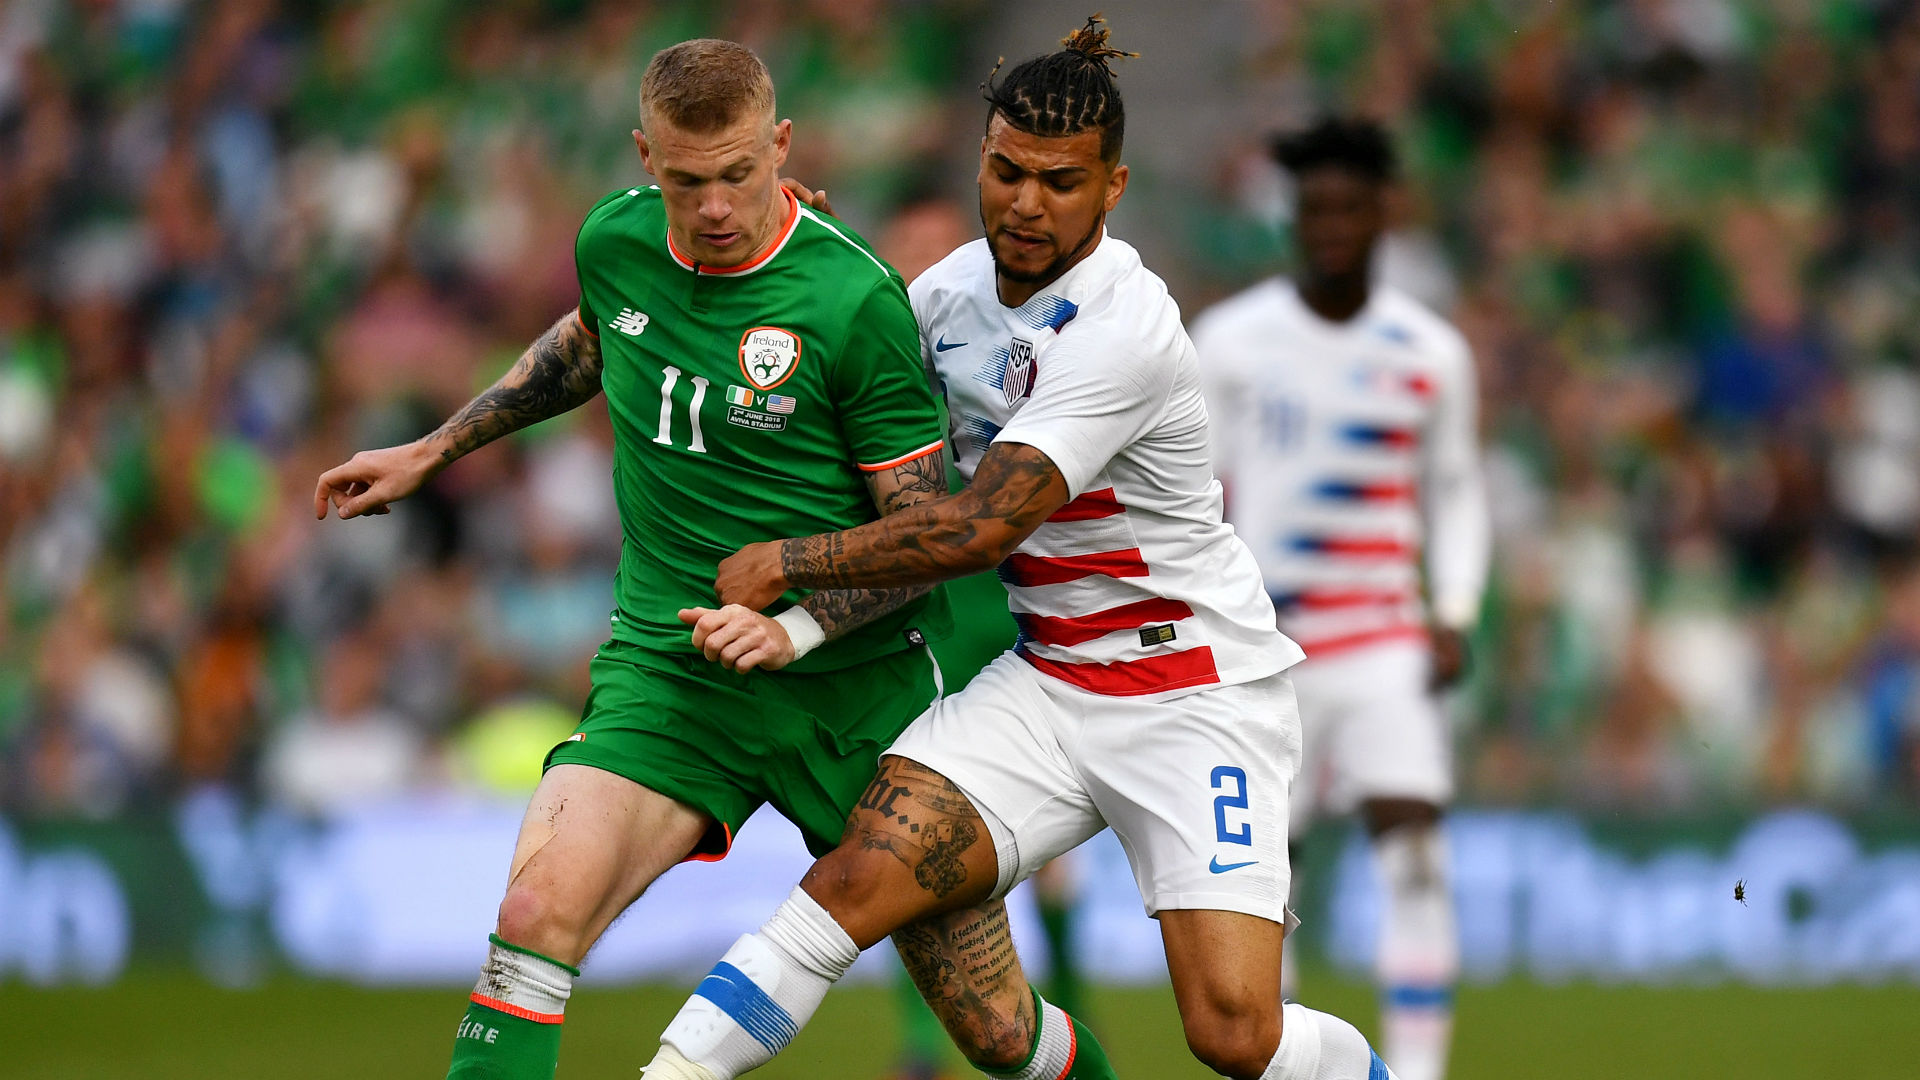 James McClean DeAndre Yedlin Ireland USA international friendly 2018